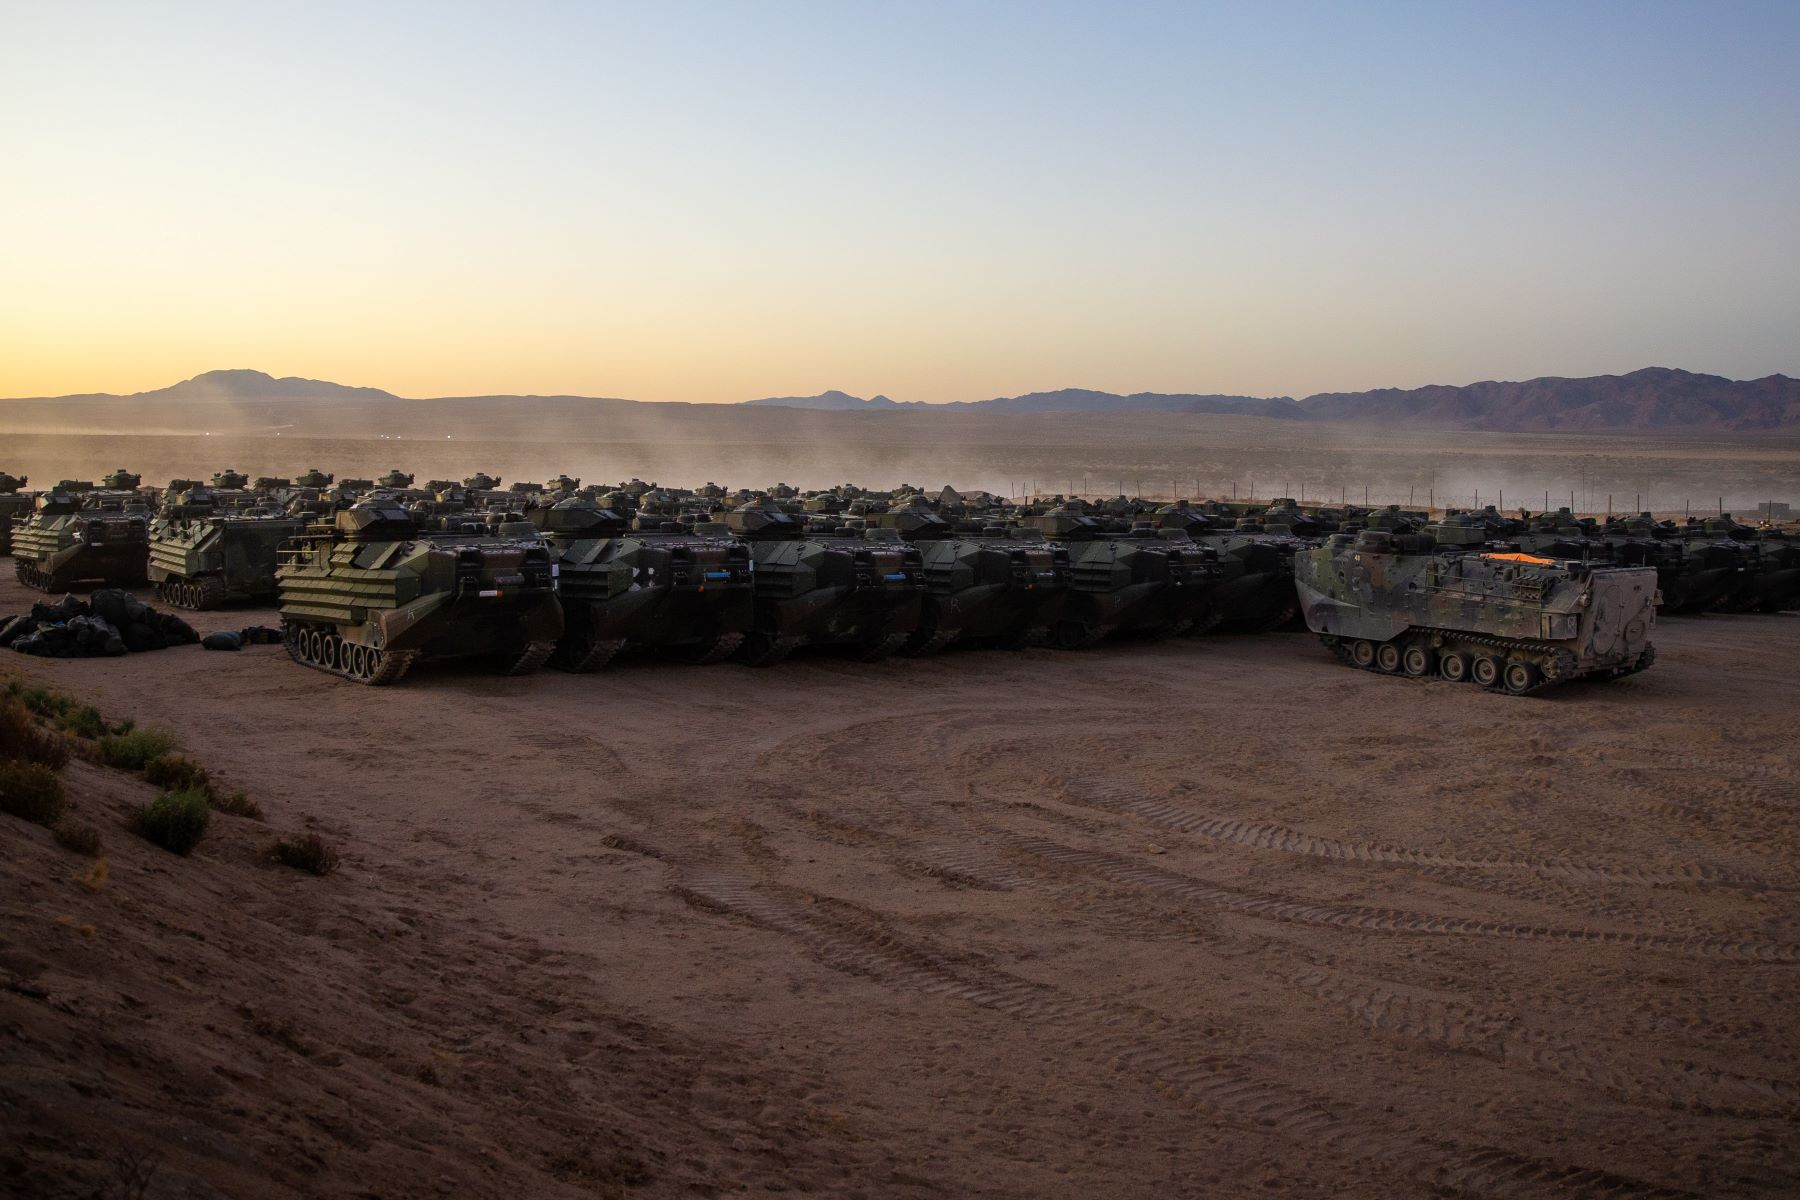 'Unlike Any Exercise': A Massive Marine Corps War Game Is Happening at 29 Palms